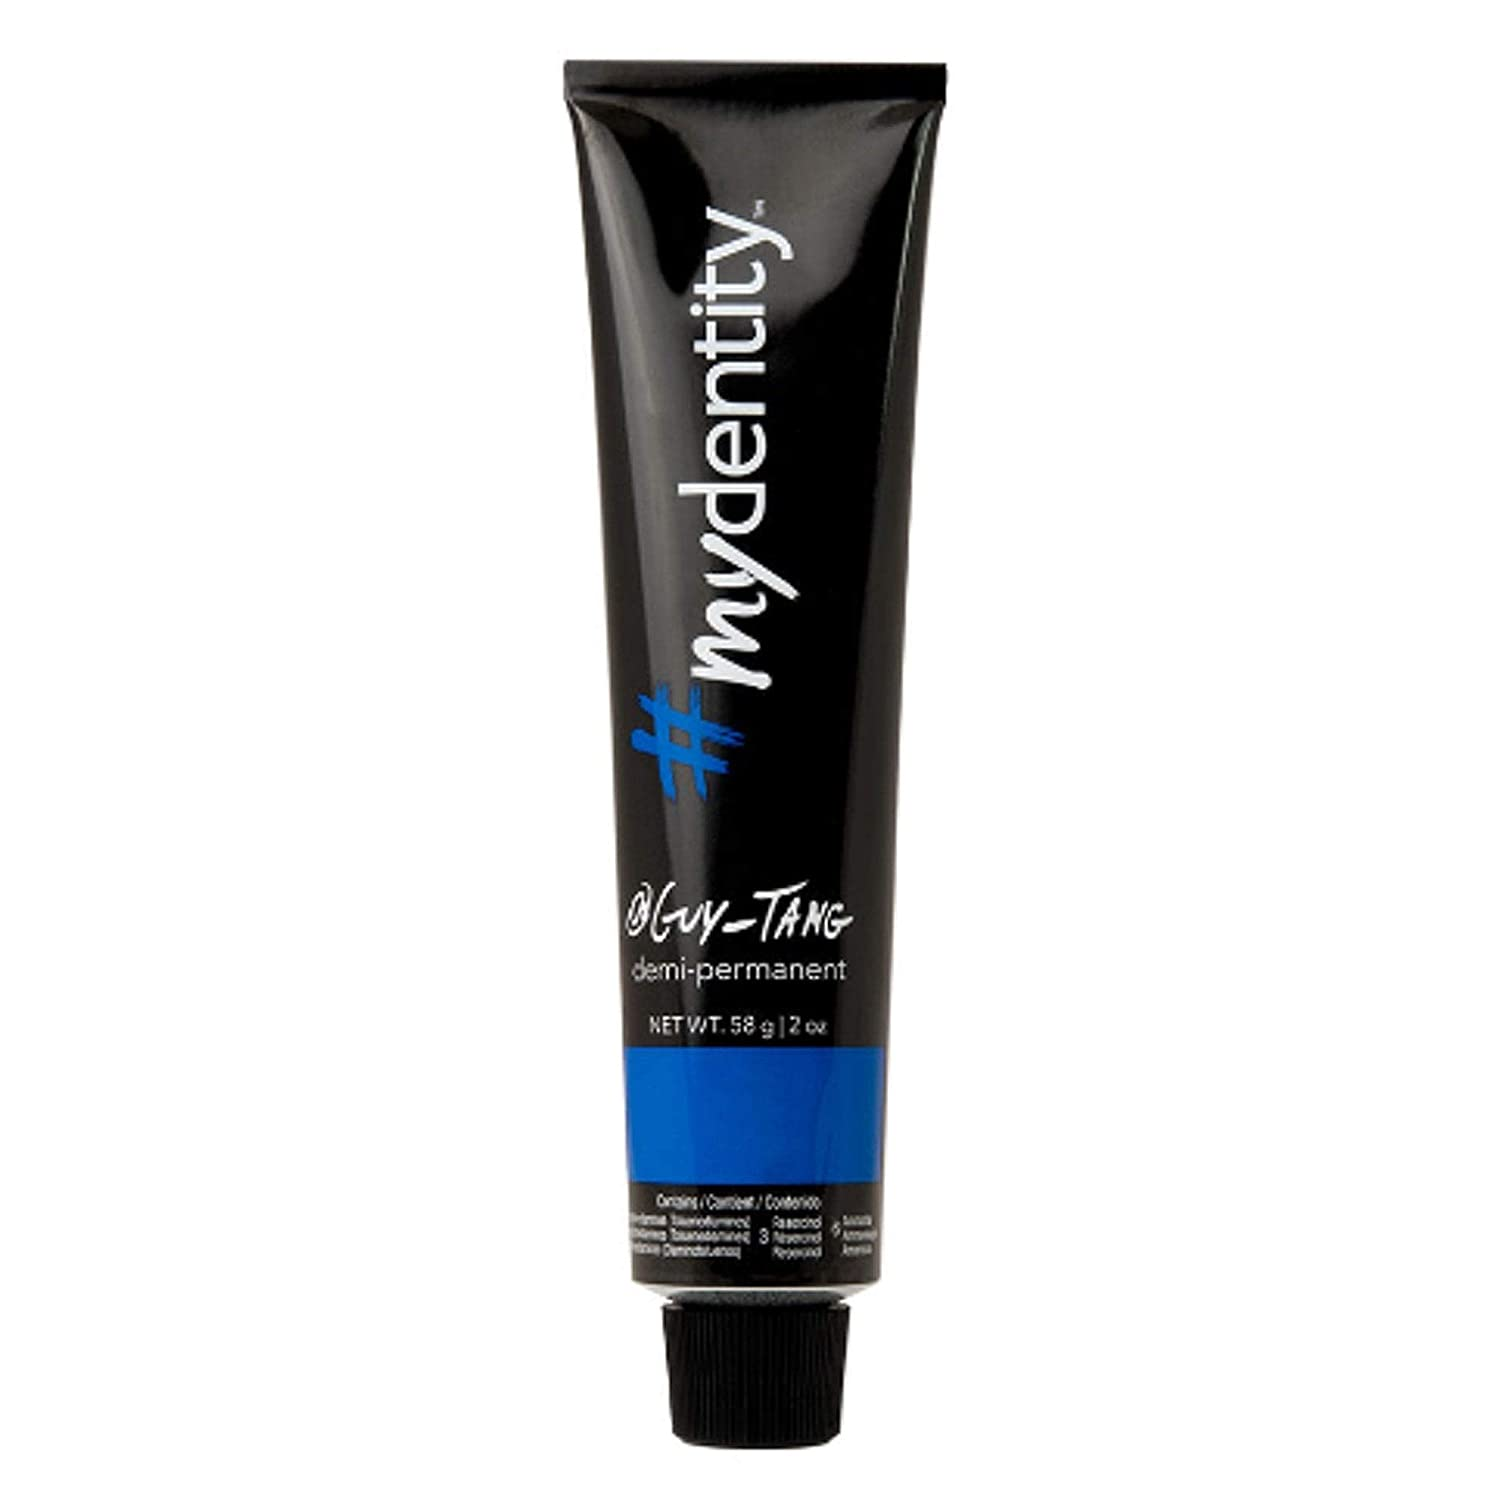 Mydentity Gorgeous Guy Tang Demi Soldering Permanent Hair 8DL Color 58g